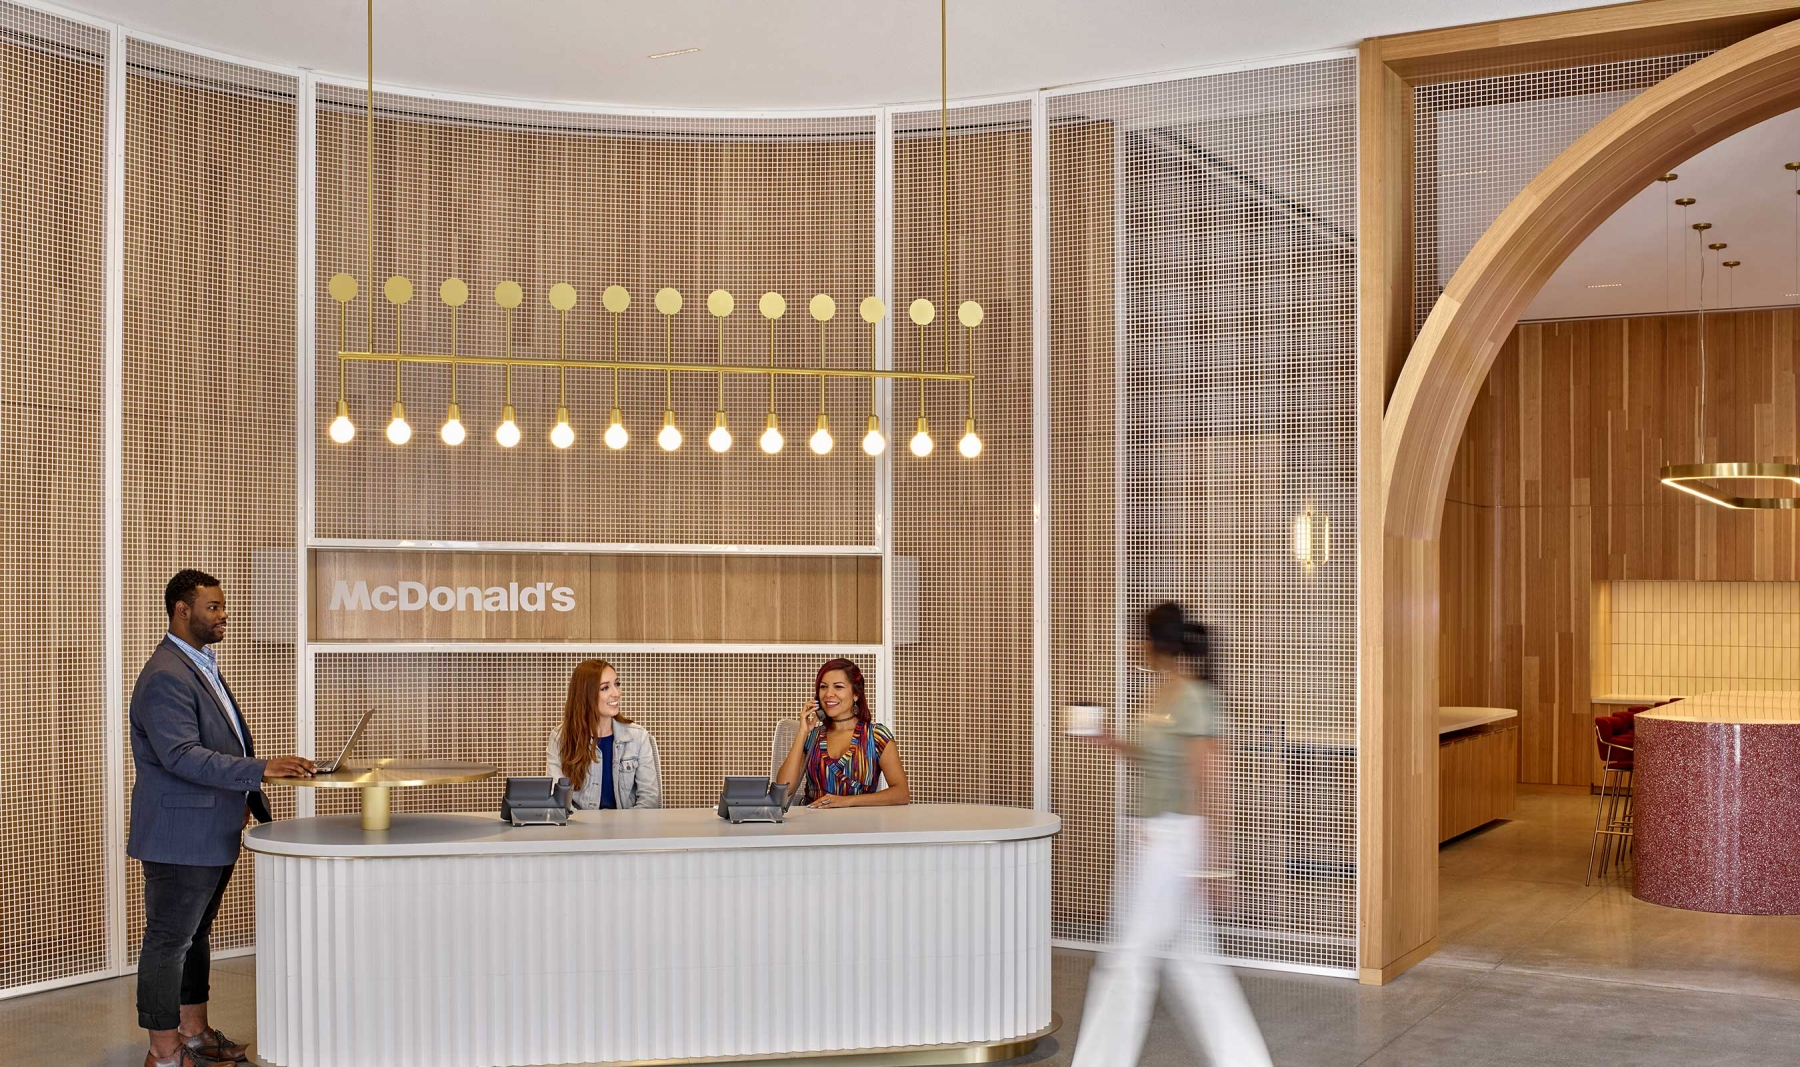 McDonald's Headquarters in Chicago feature Banker Wire's L-81 woven wire mesh as ceiling panels and interior space dividers.